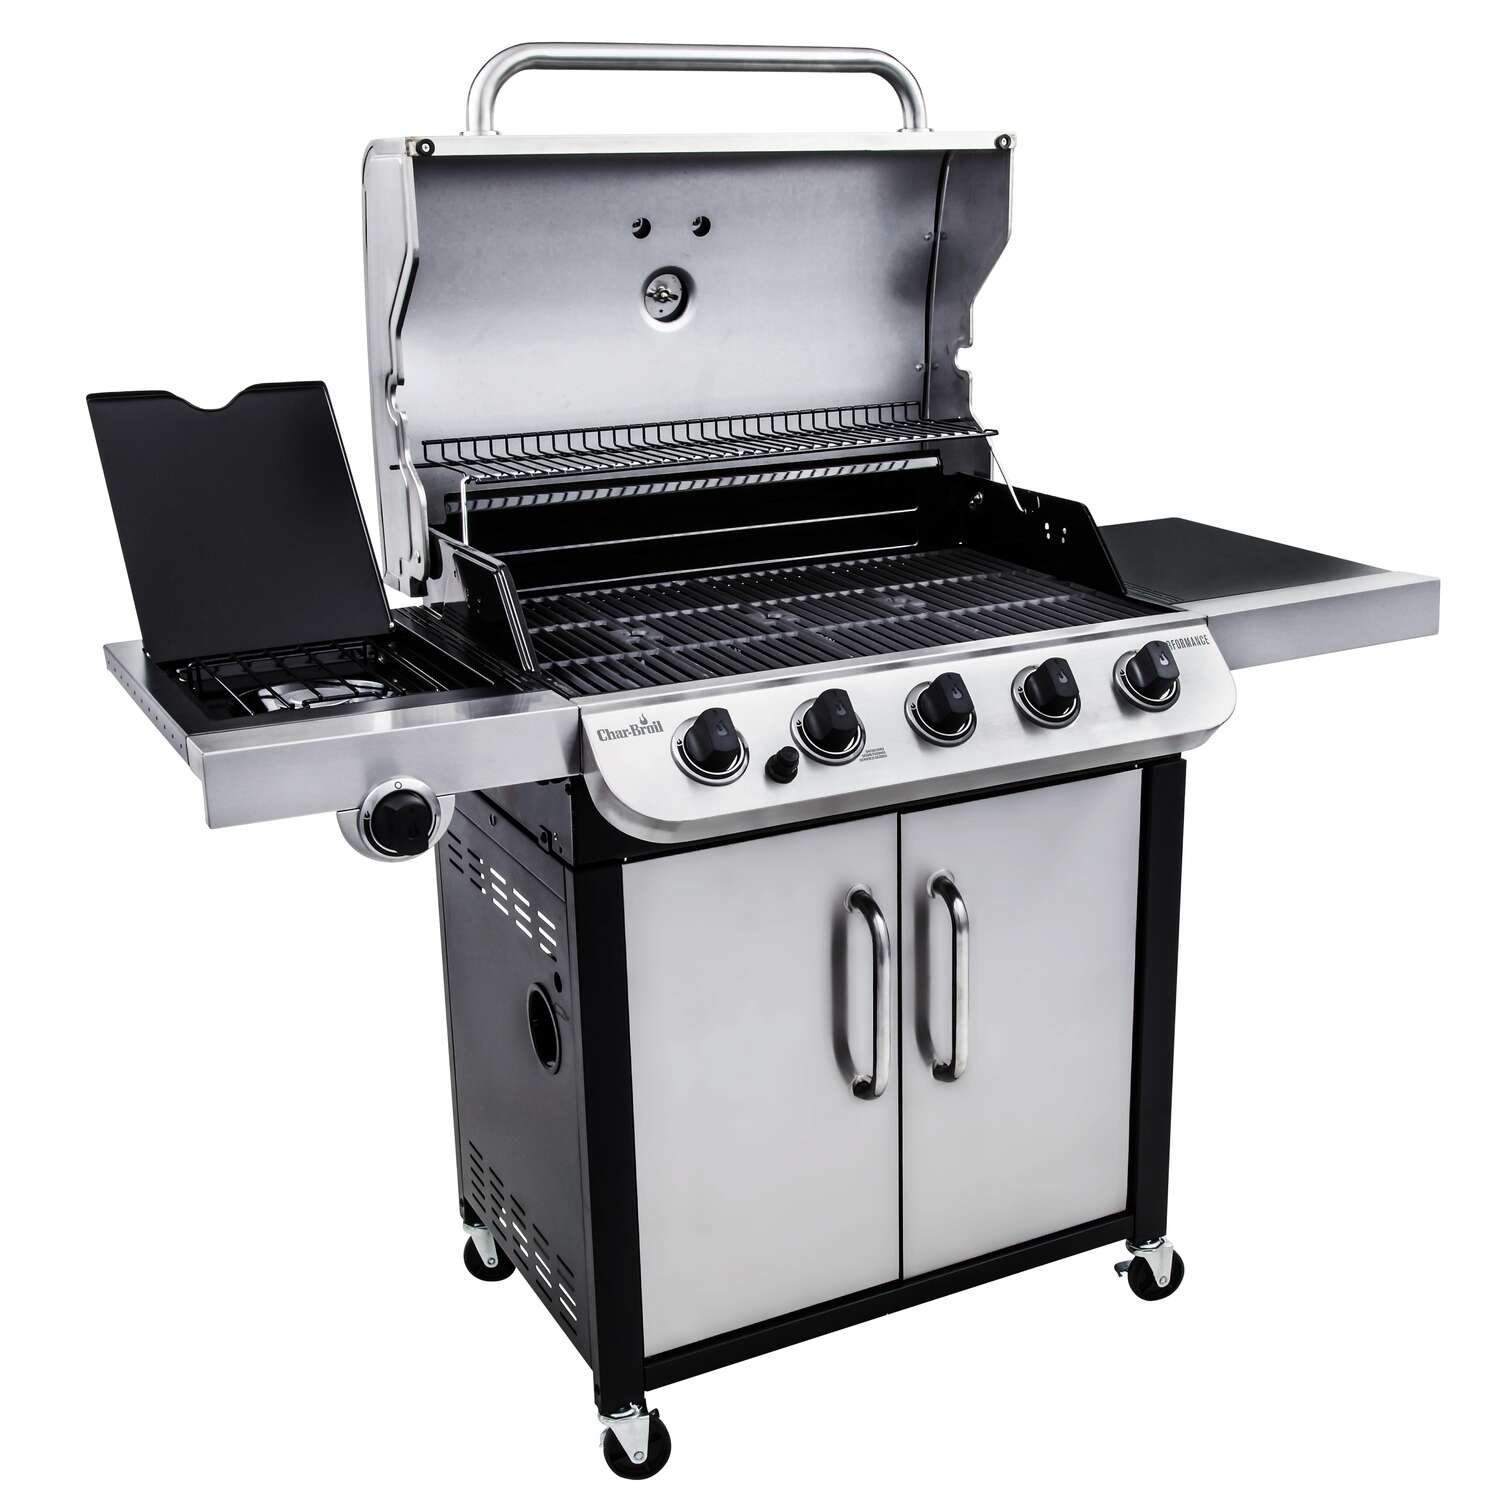 Char-Broil  Performance  5 burners Propane  Silver  Grill  45000 BTU